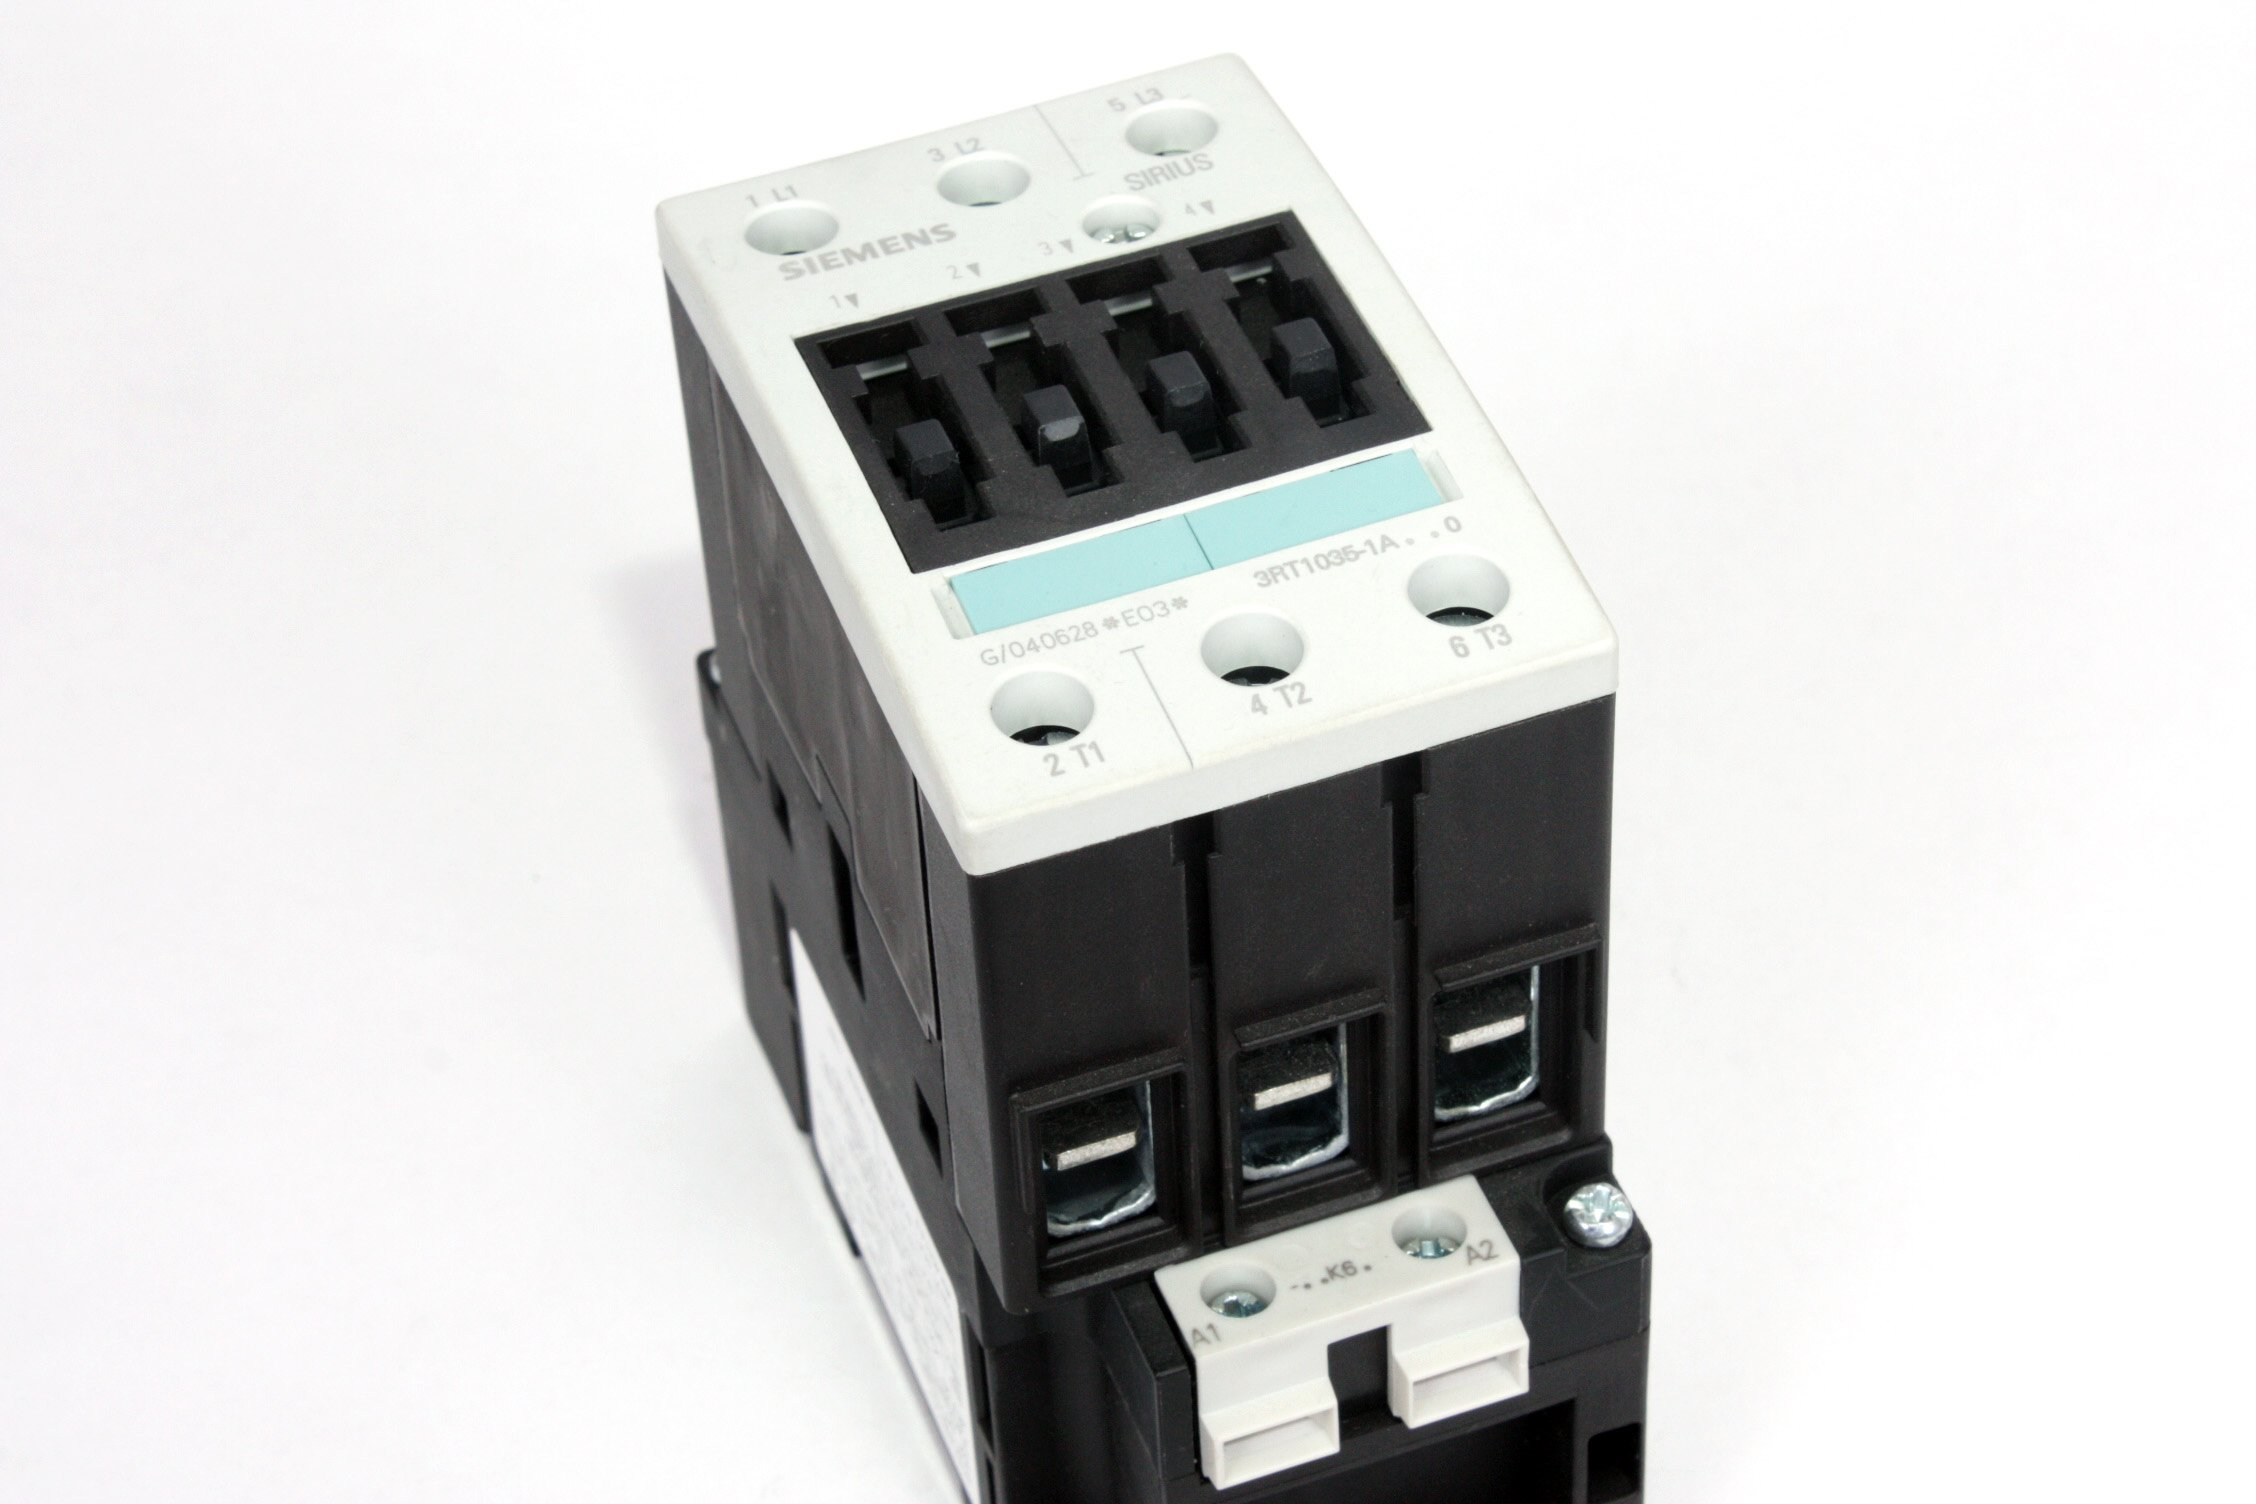 Siemens 3RT1035-1AK60 IEC Contactor Size S2, 50 AMP with a 110v50Hz/120v60Hz coil